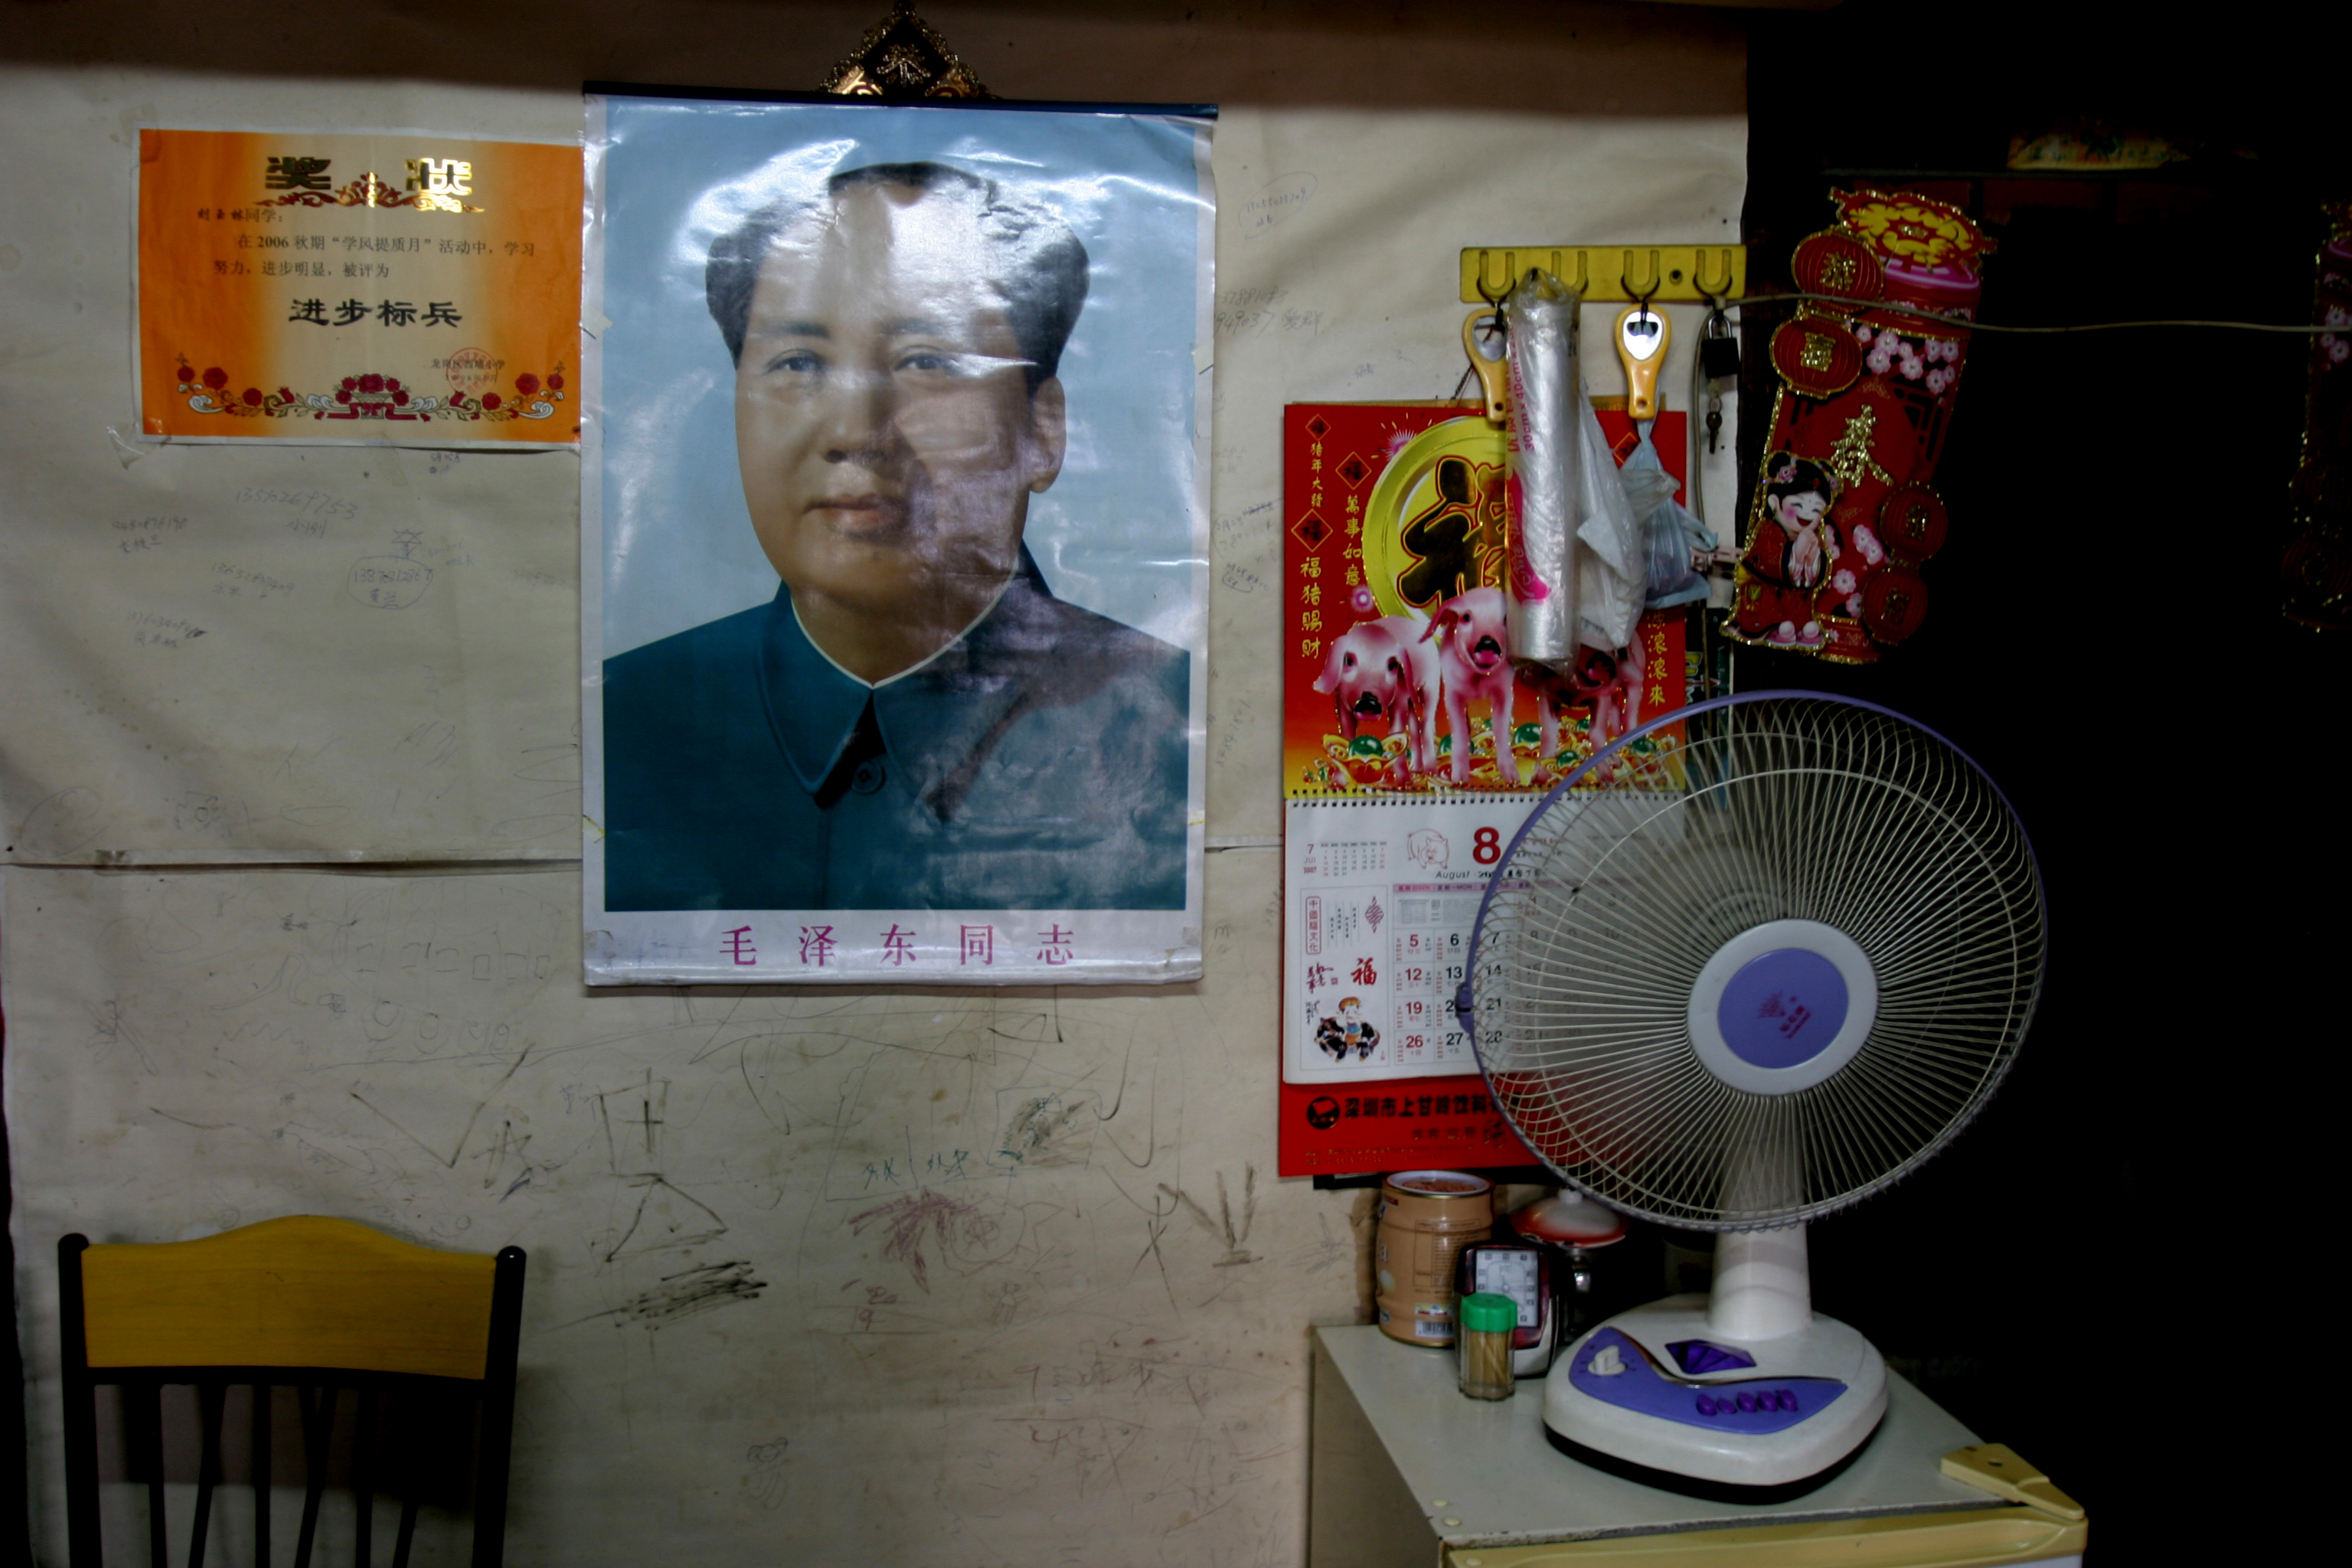 Unemployed Factory Worker's Home--Remembering Chairman Mao